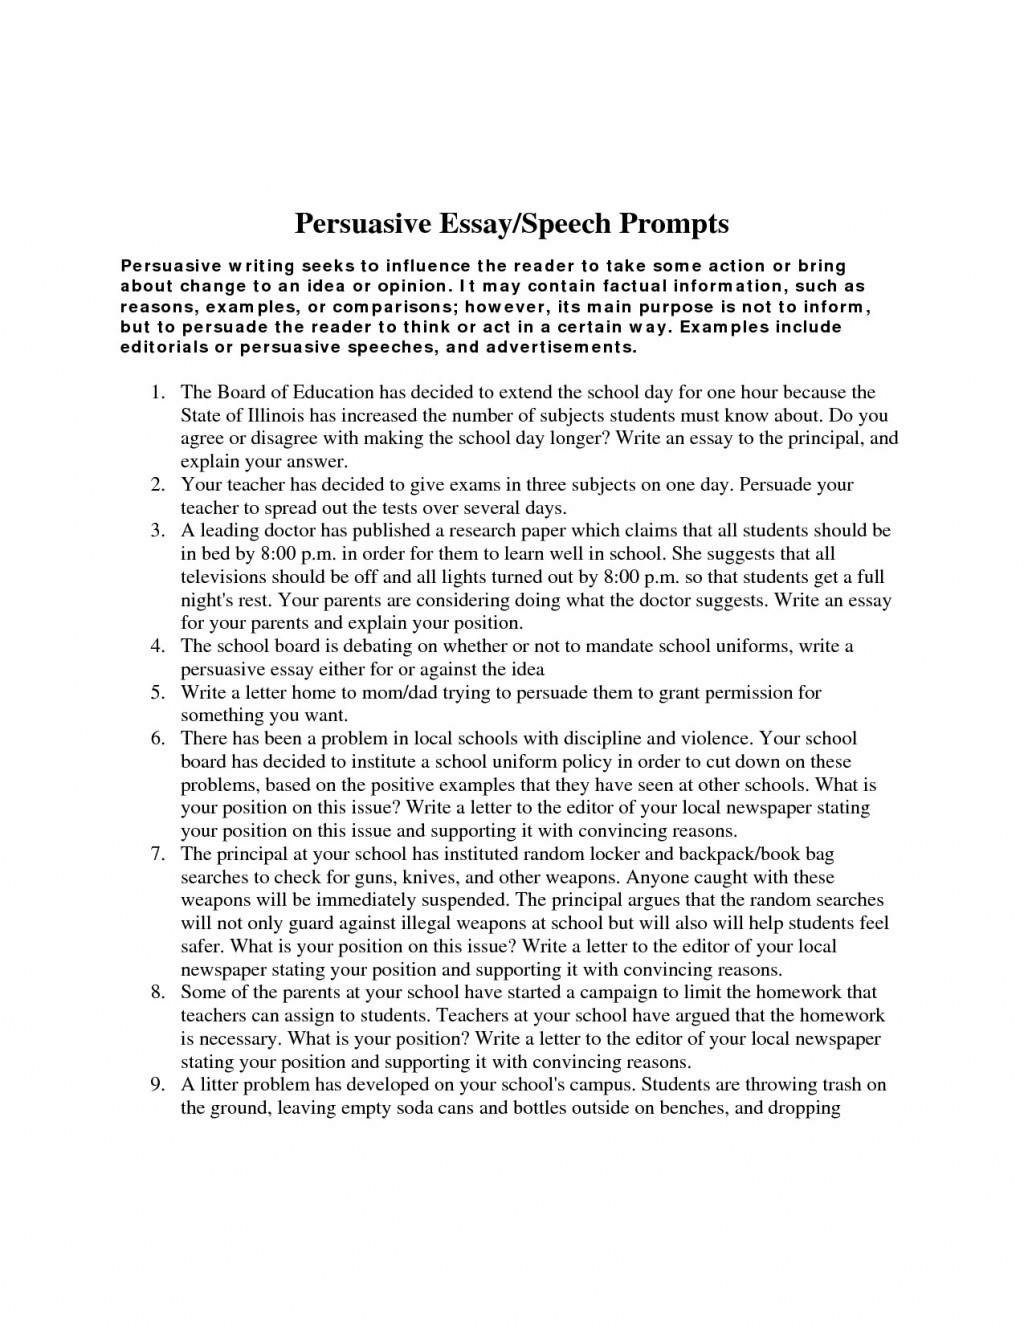 011 Persuasive Essay Prompts Example Wondrous Diagnostic Introduction Writing High School Large